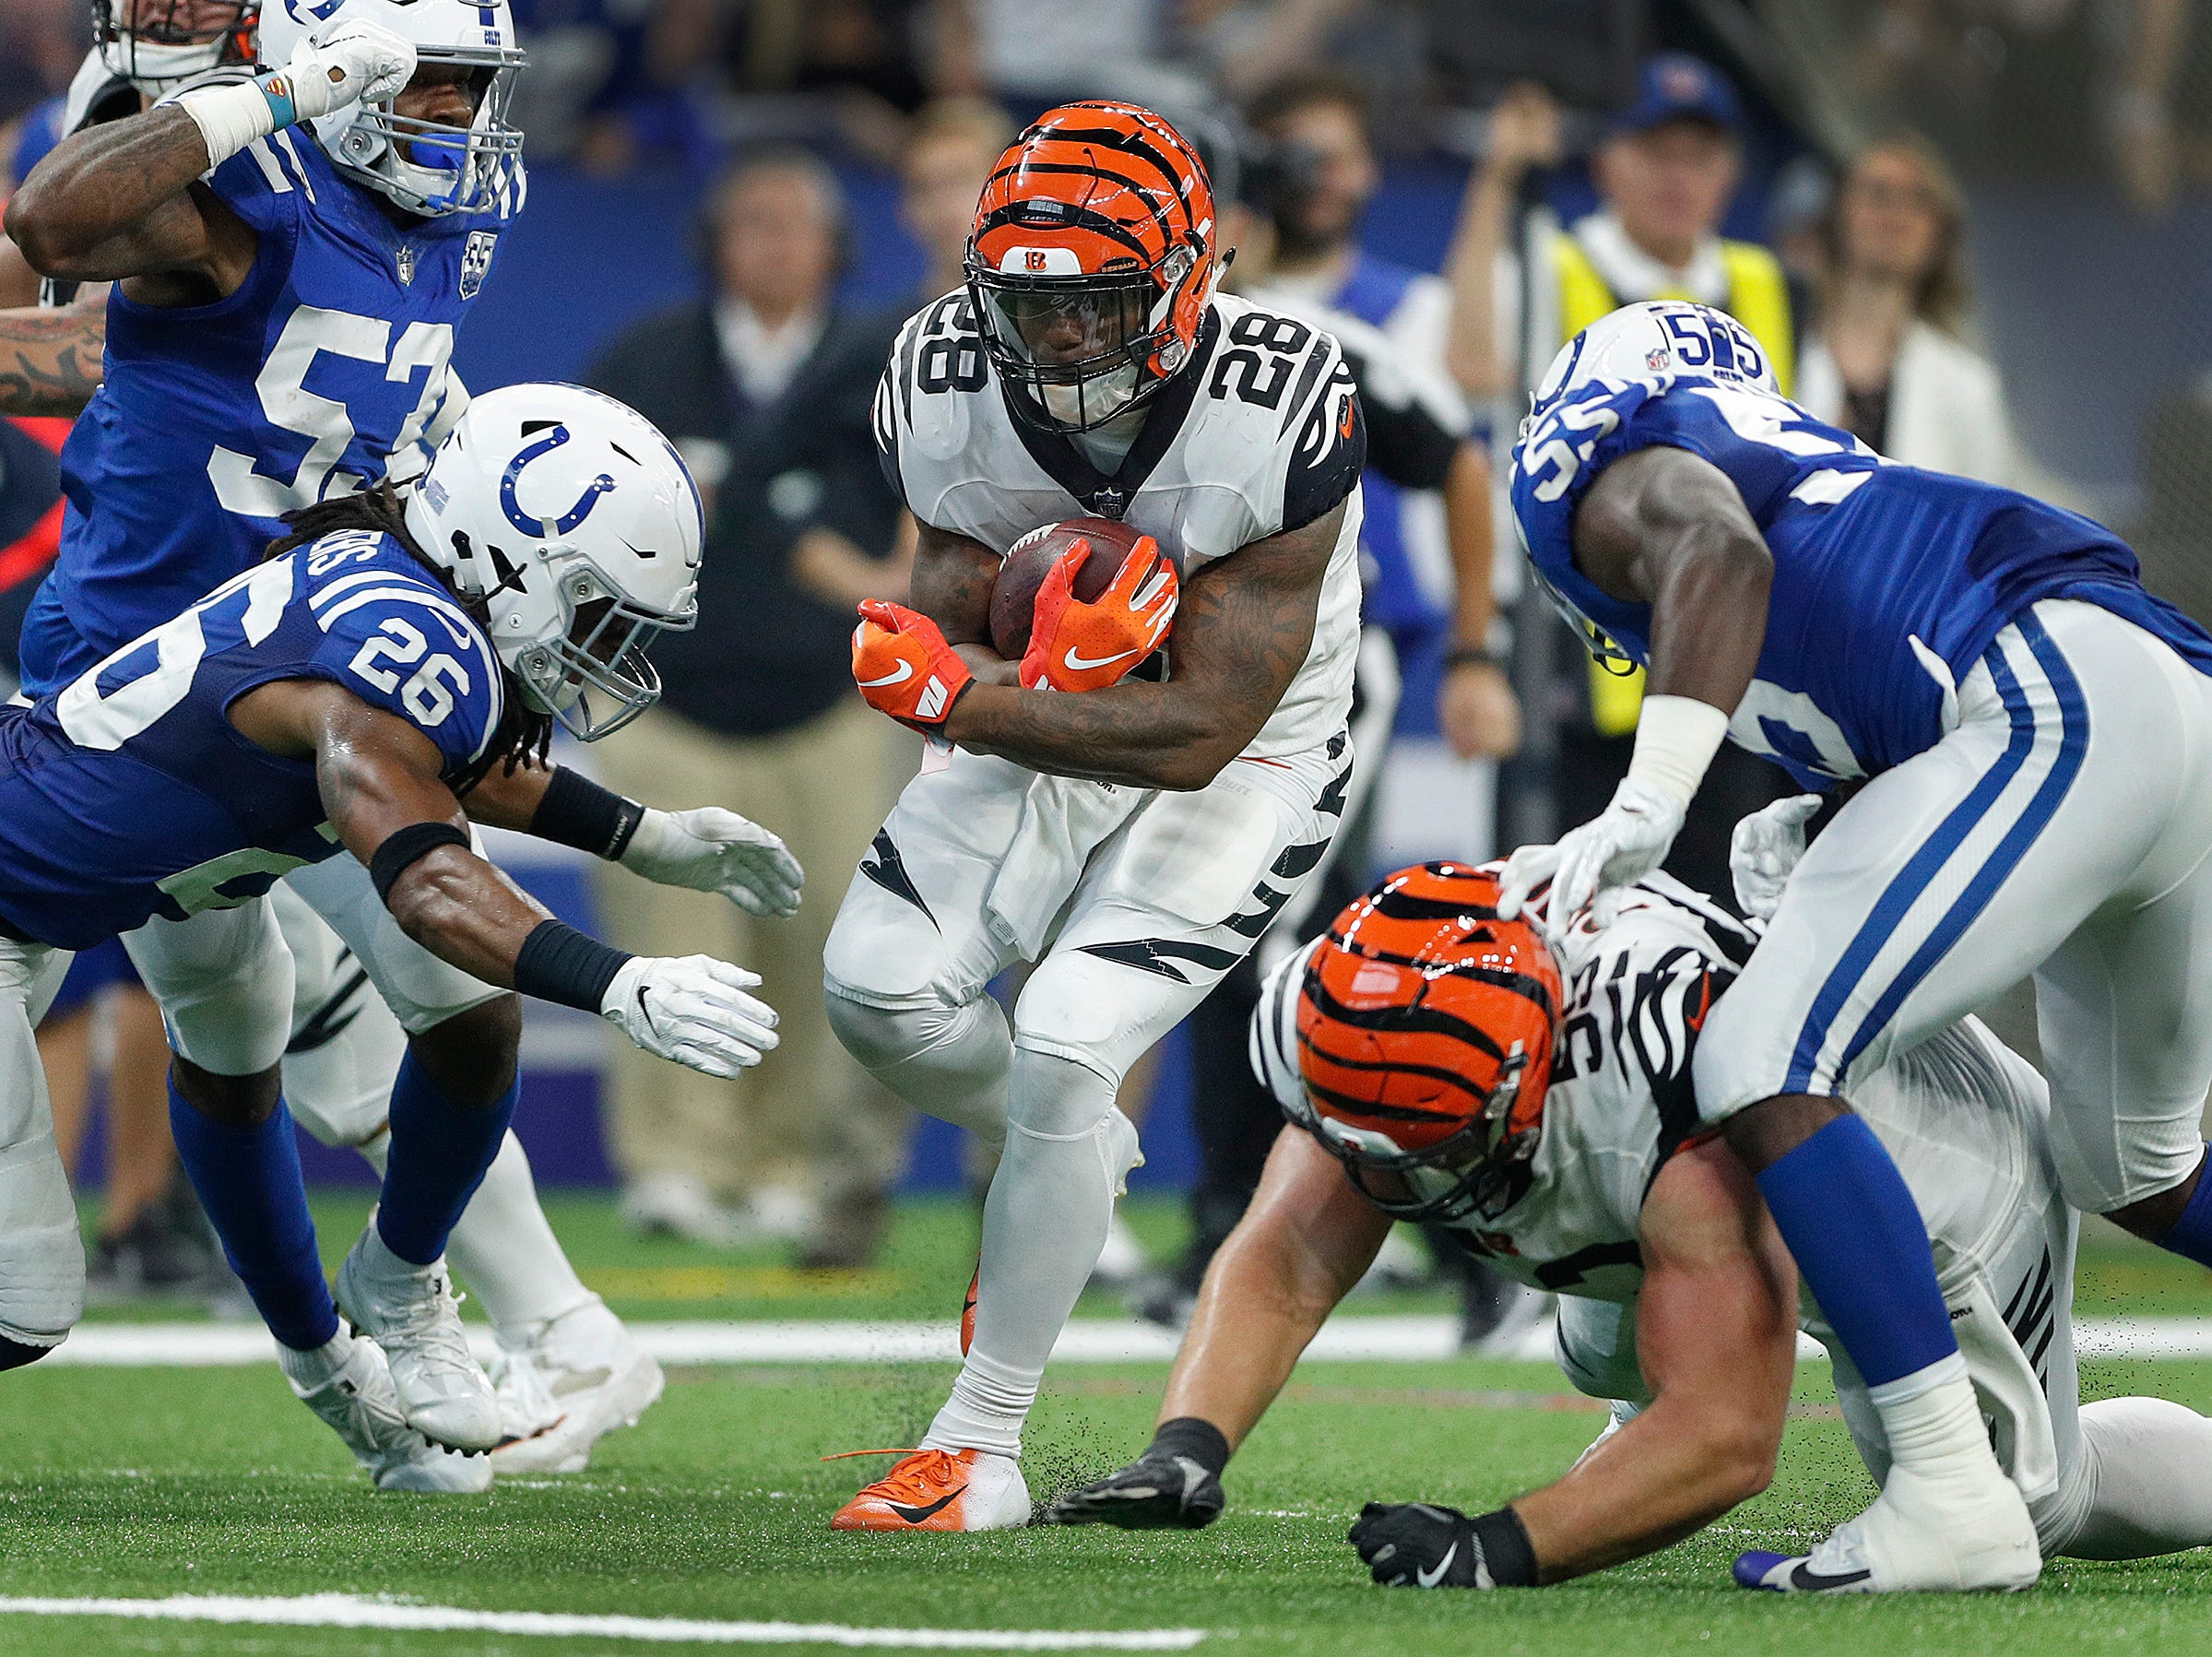 Cincinnati Bengals running back Joe Mixon (28) runs into the Colts secondary and Indianapolis Colts defensive back Clayton Geathers (26) in the second half of their game at Lucas Oil Stadium on Sept. 9, 2018. The Indianapolis Colts lost to the Cincinnati Bengals 34-23.